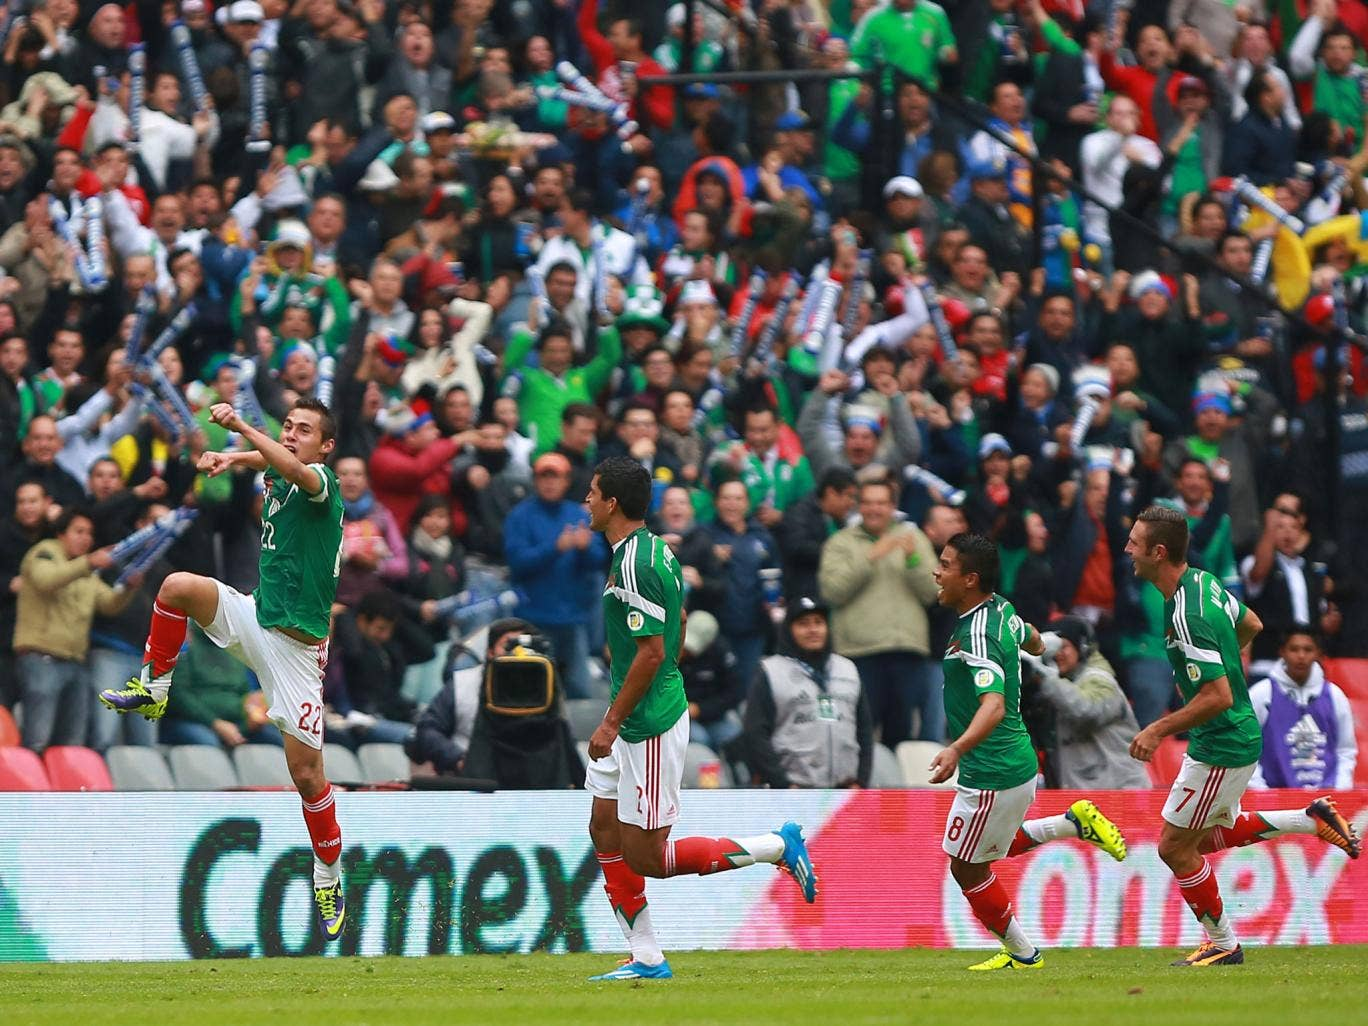 Paul Aguilar celebrates after scoring for Mexico against New Zealand in their 2014 World Cup play-off